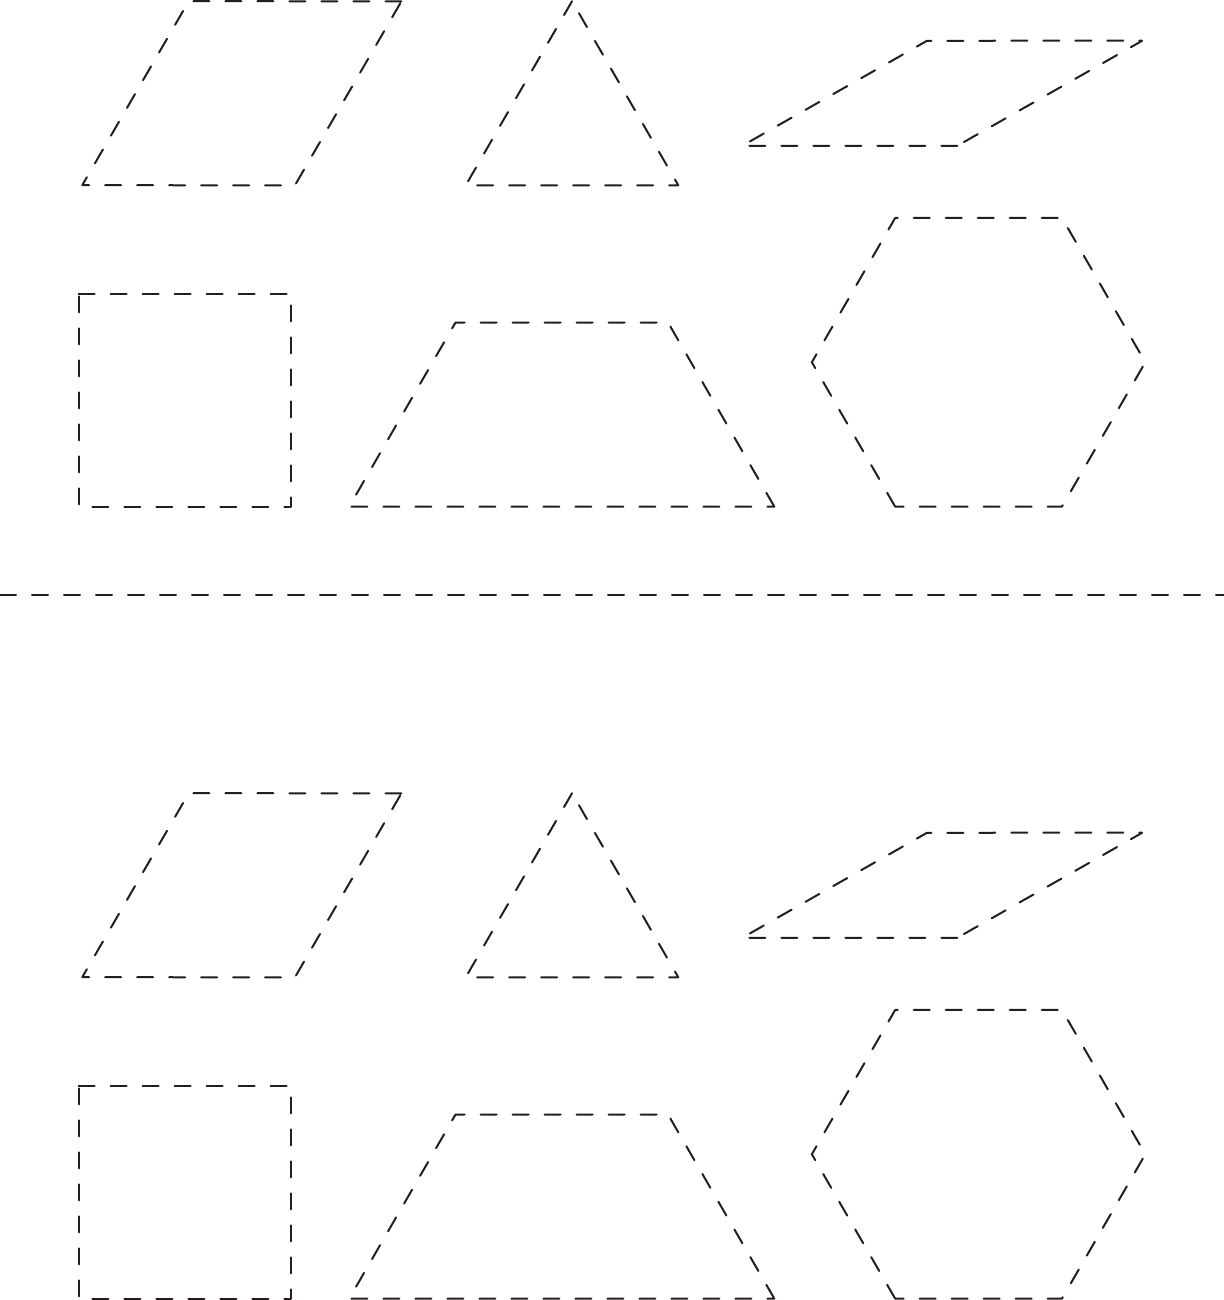 Download pattern block template 2 for free tidyform pattern block template 2 pronofoot35fo Choice Image